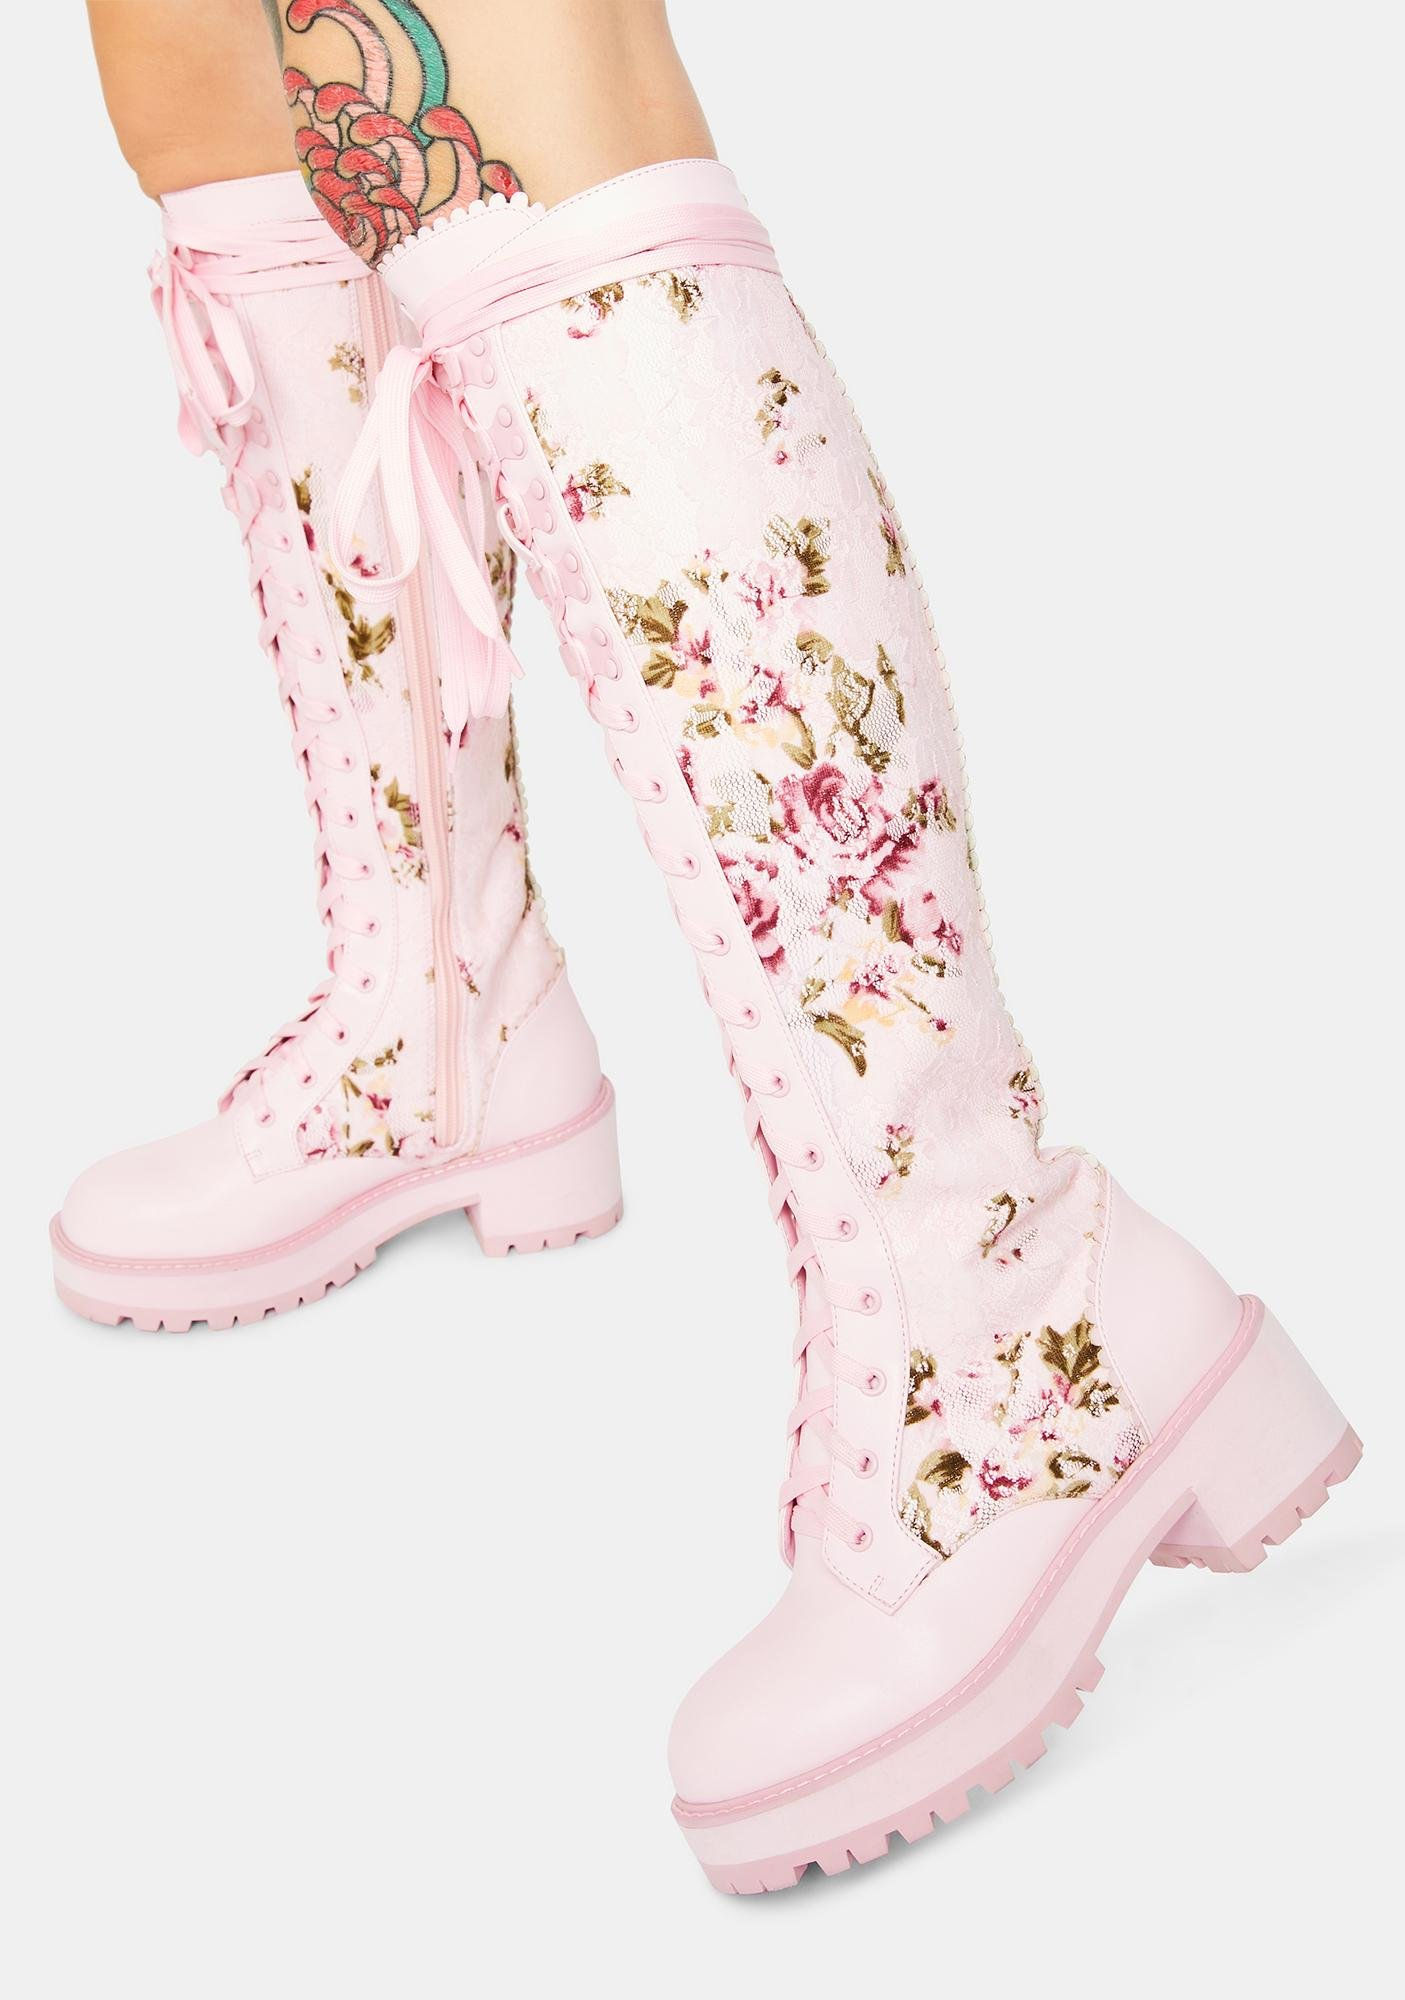 Sugar Thrillz On The Vine Floral Lace Knee High Combat Boots